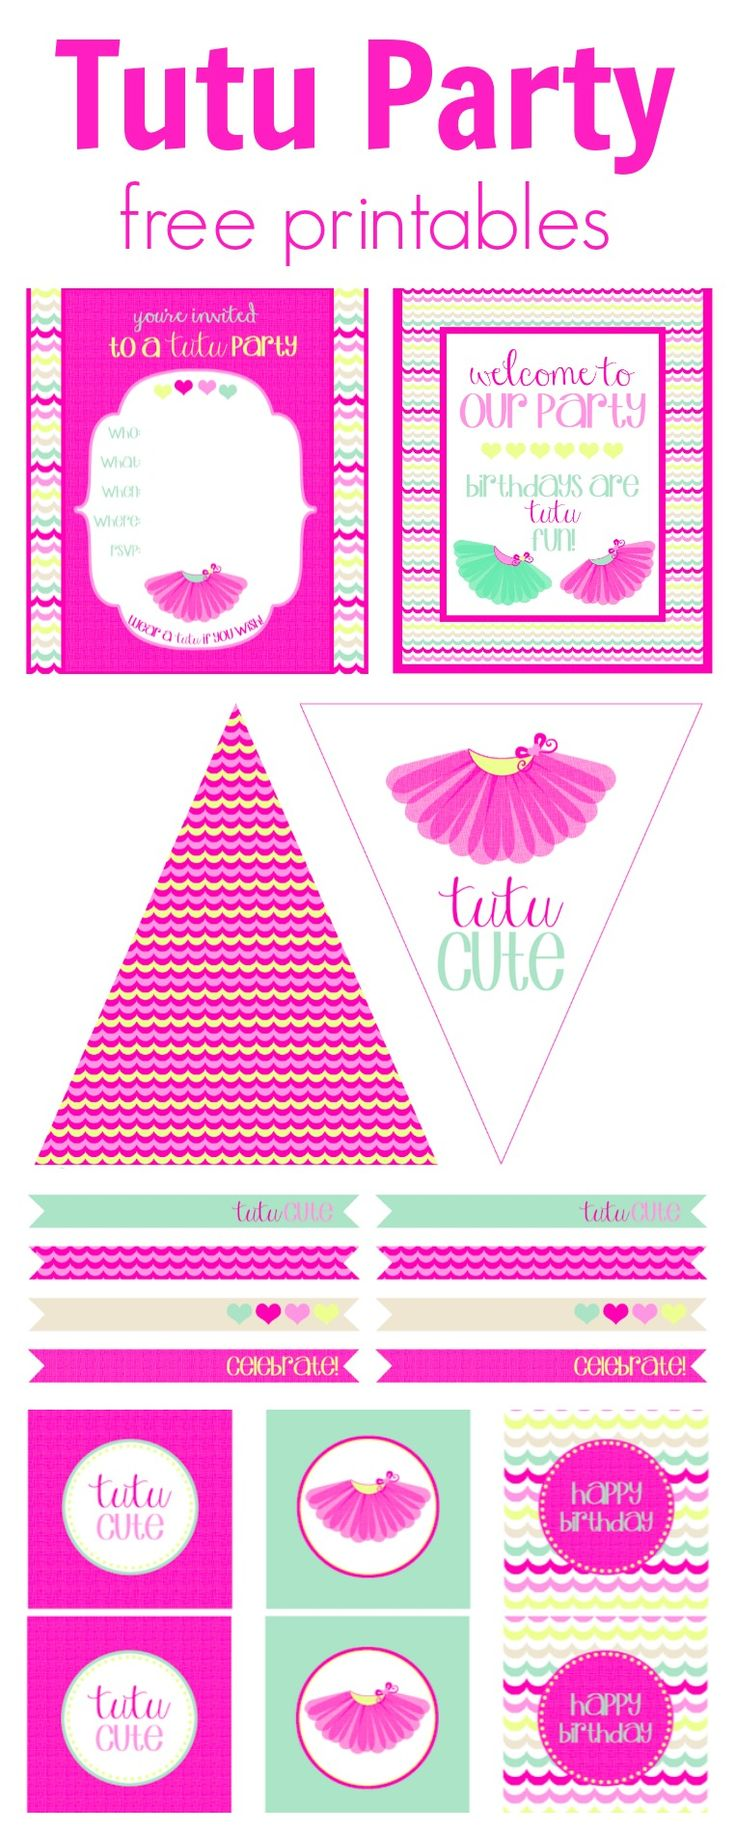 Tutu Party Free Printables | Perfect birthday or playdate theme <3 www.weheartparties.com